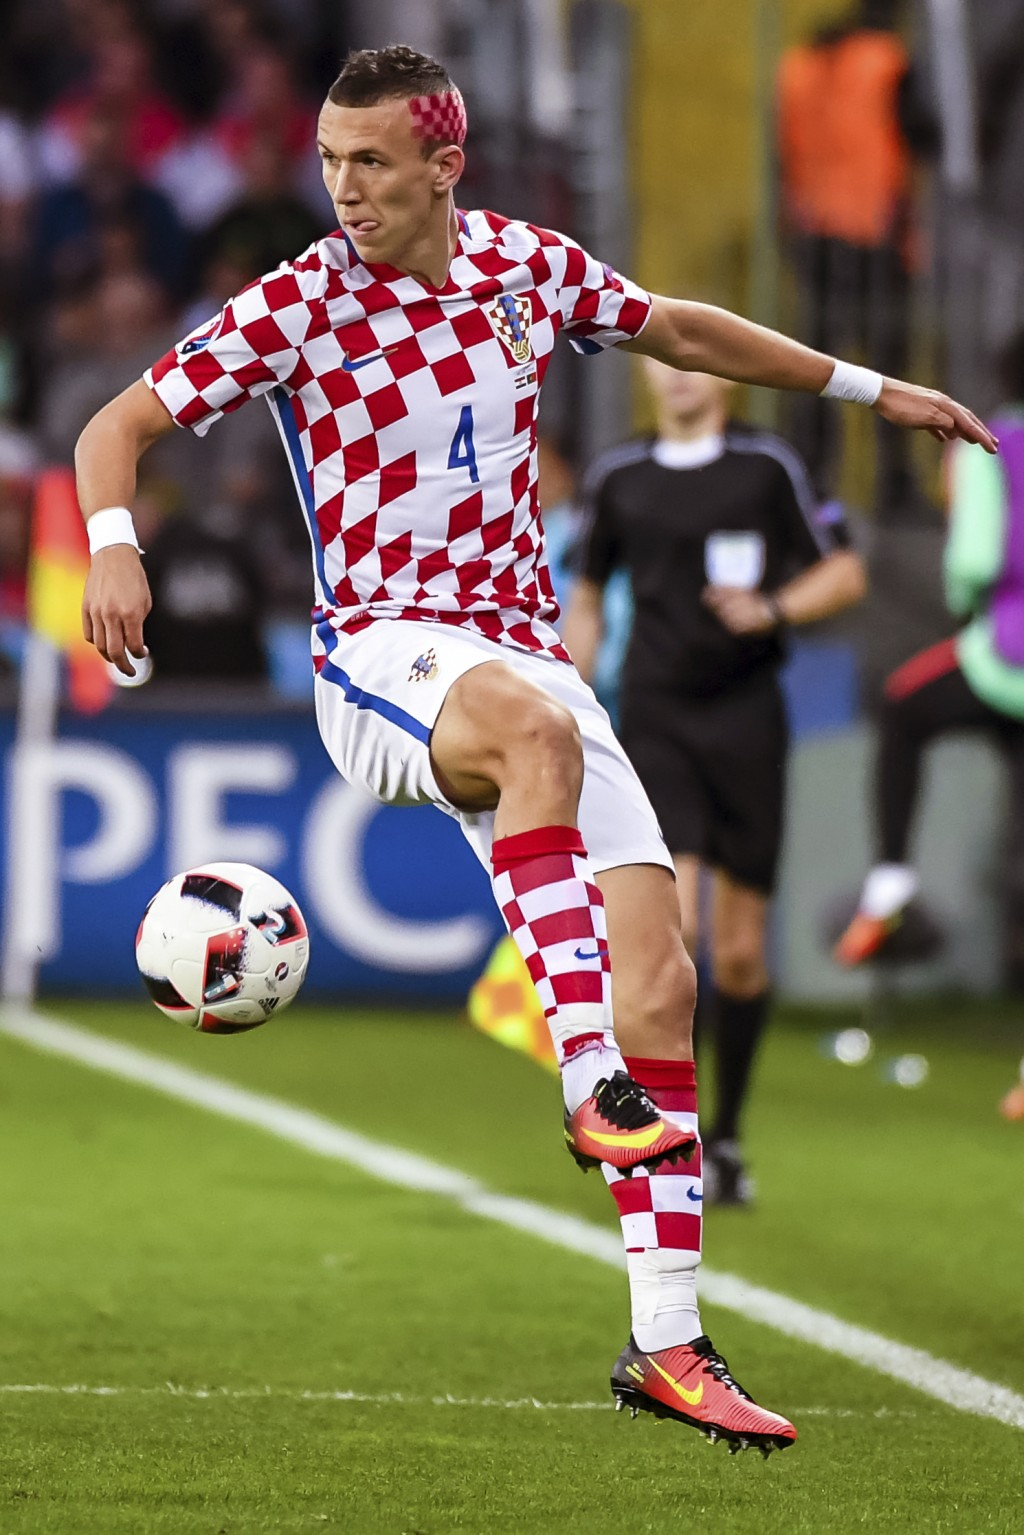 FILE - In this Saturday, June 25, 2016 filer, m Croatia's Ivan Perisic controls the ball during the Euro 2016 round of 16 soccer match between Croatia...